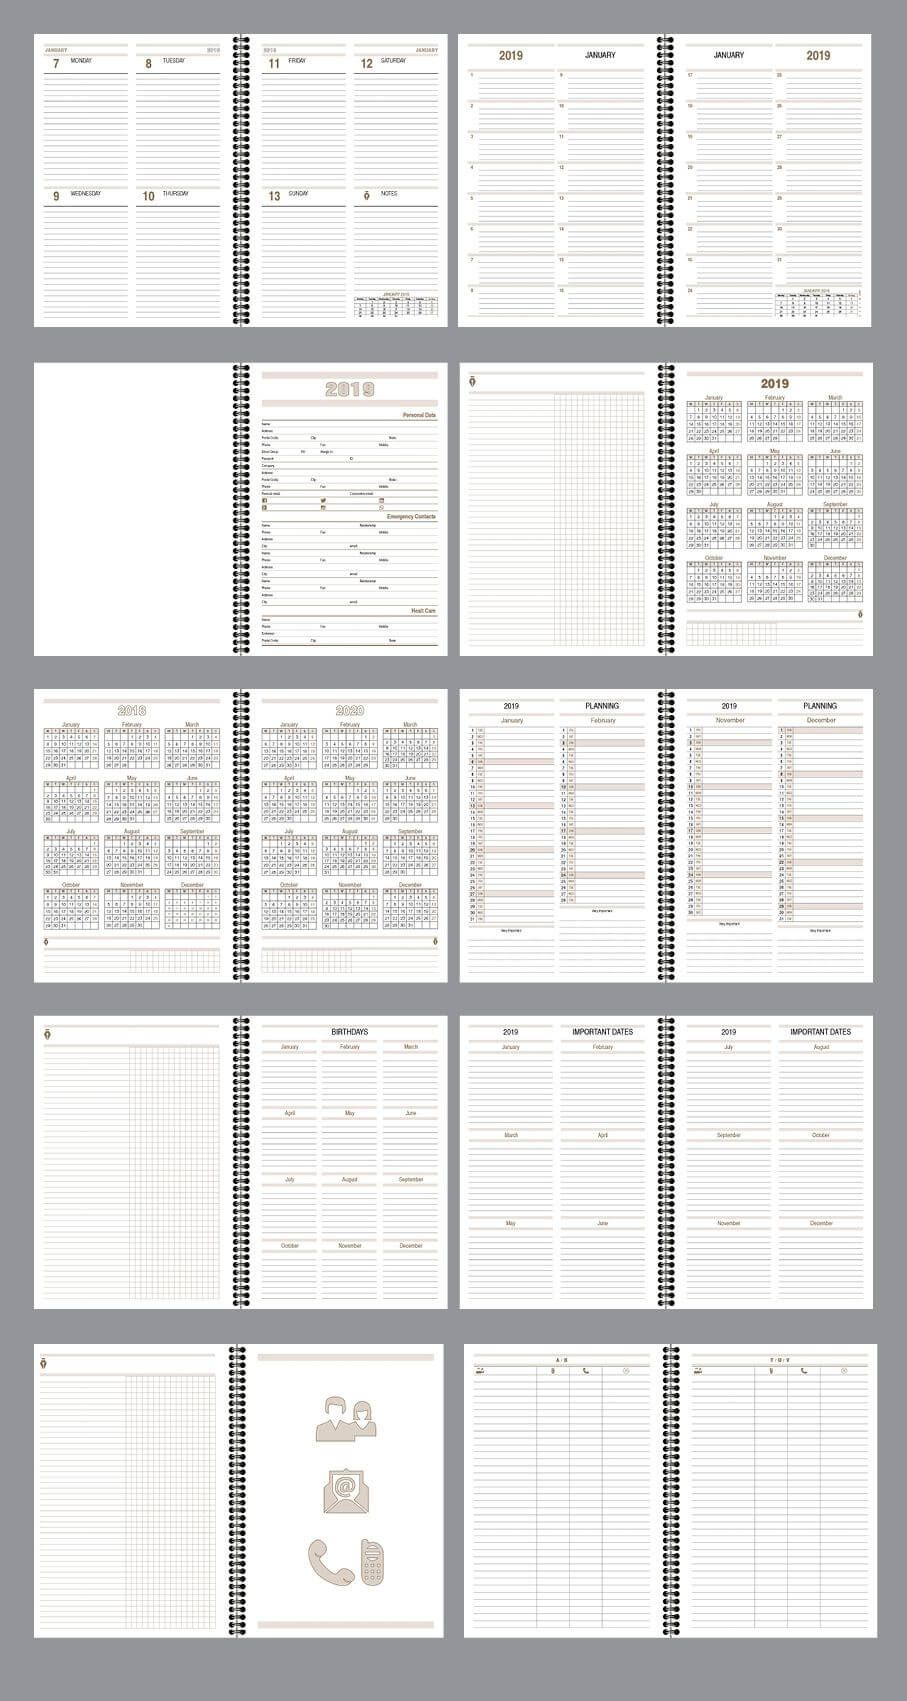 Daily Planner Agenda Indesign Template Fully Editable Model Atd04 With Paragraph Styles And Layers Wi Daily Agenda Planner Daily Planner Indesign Templates